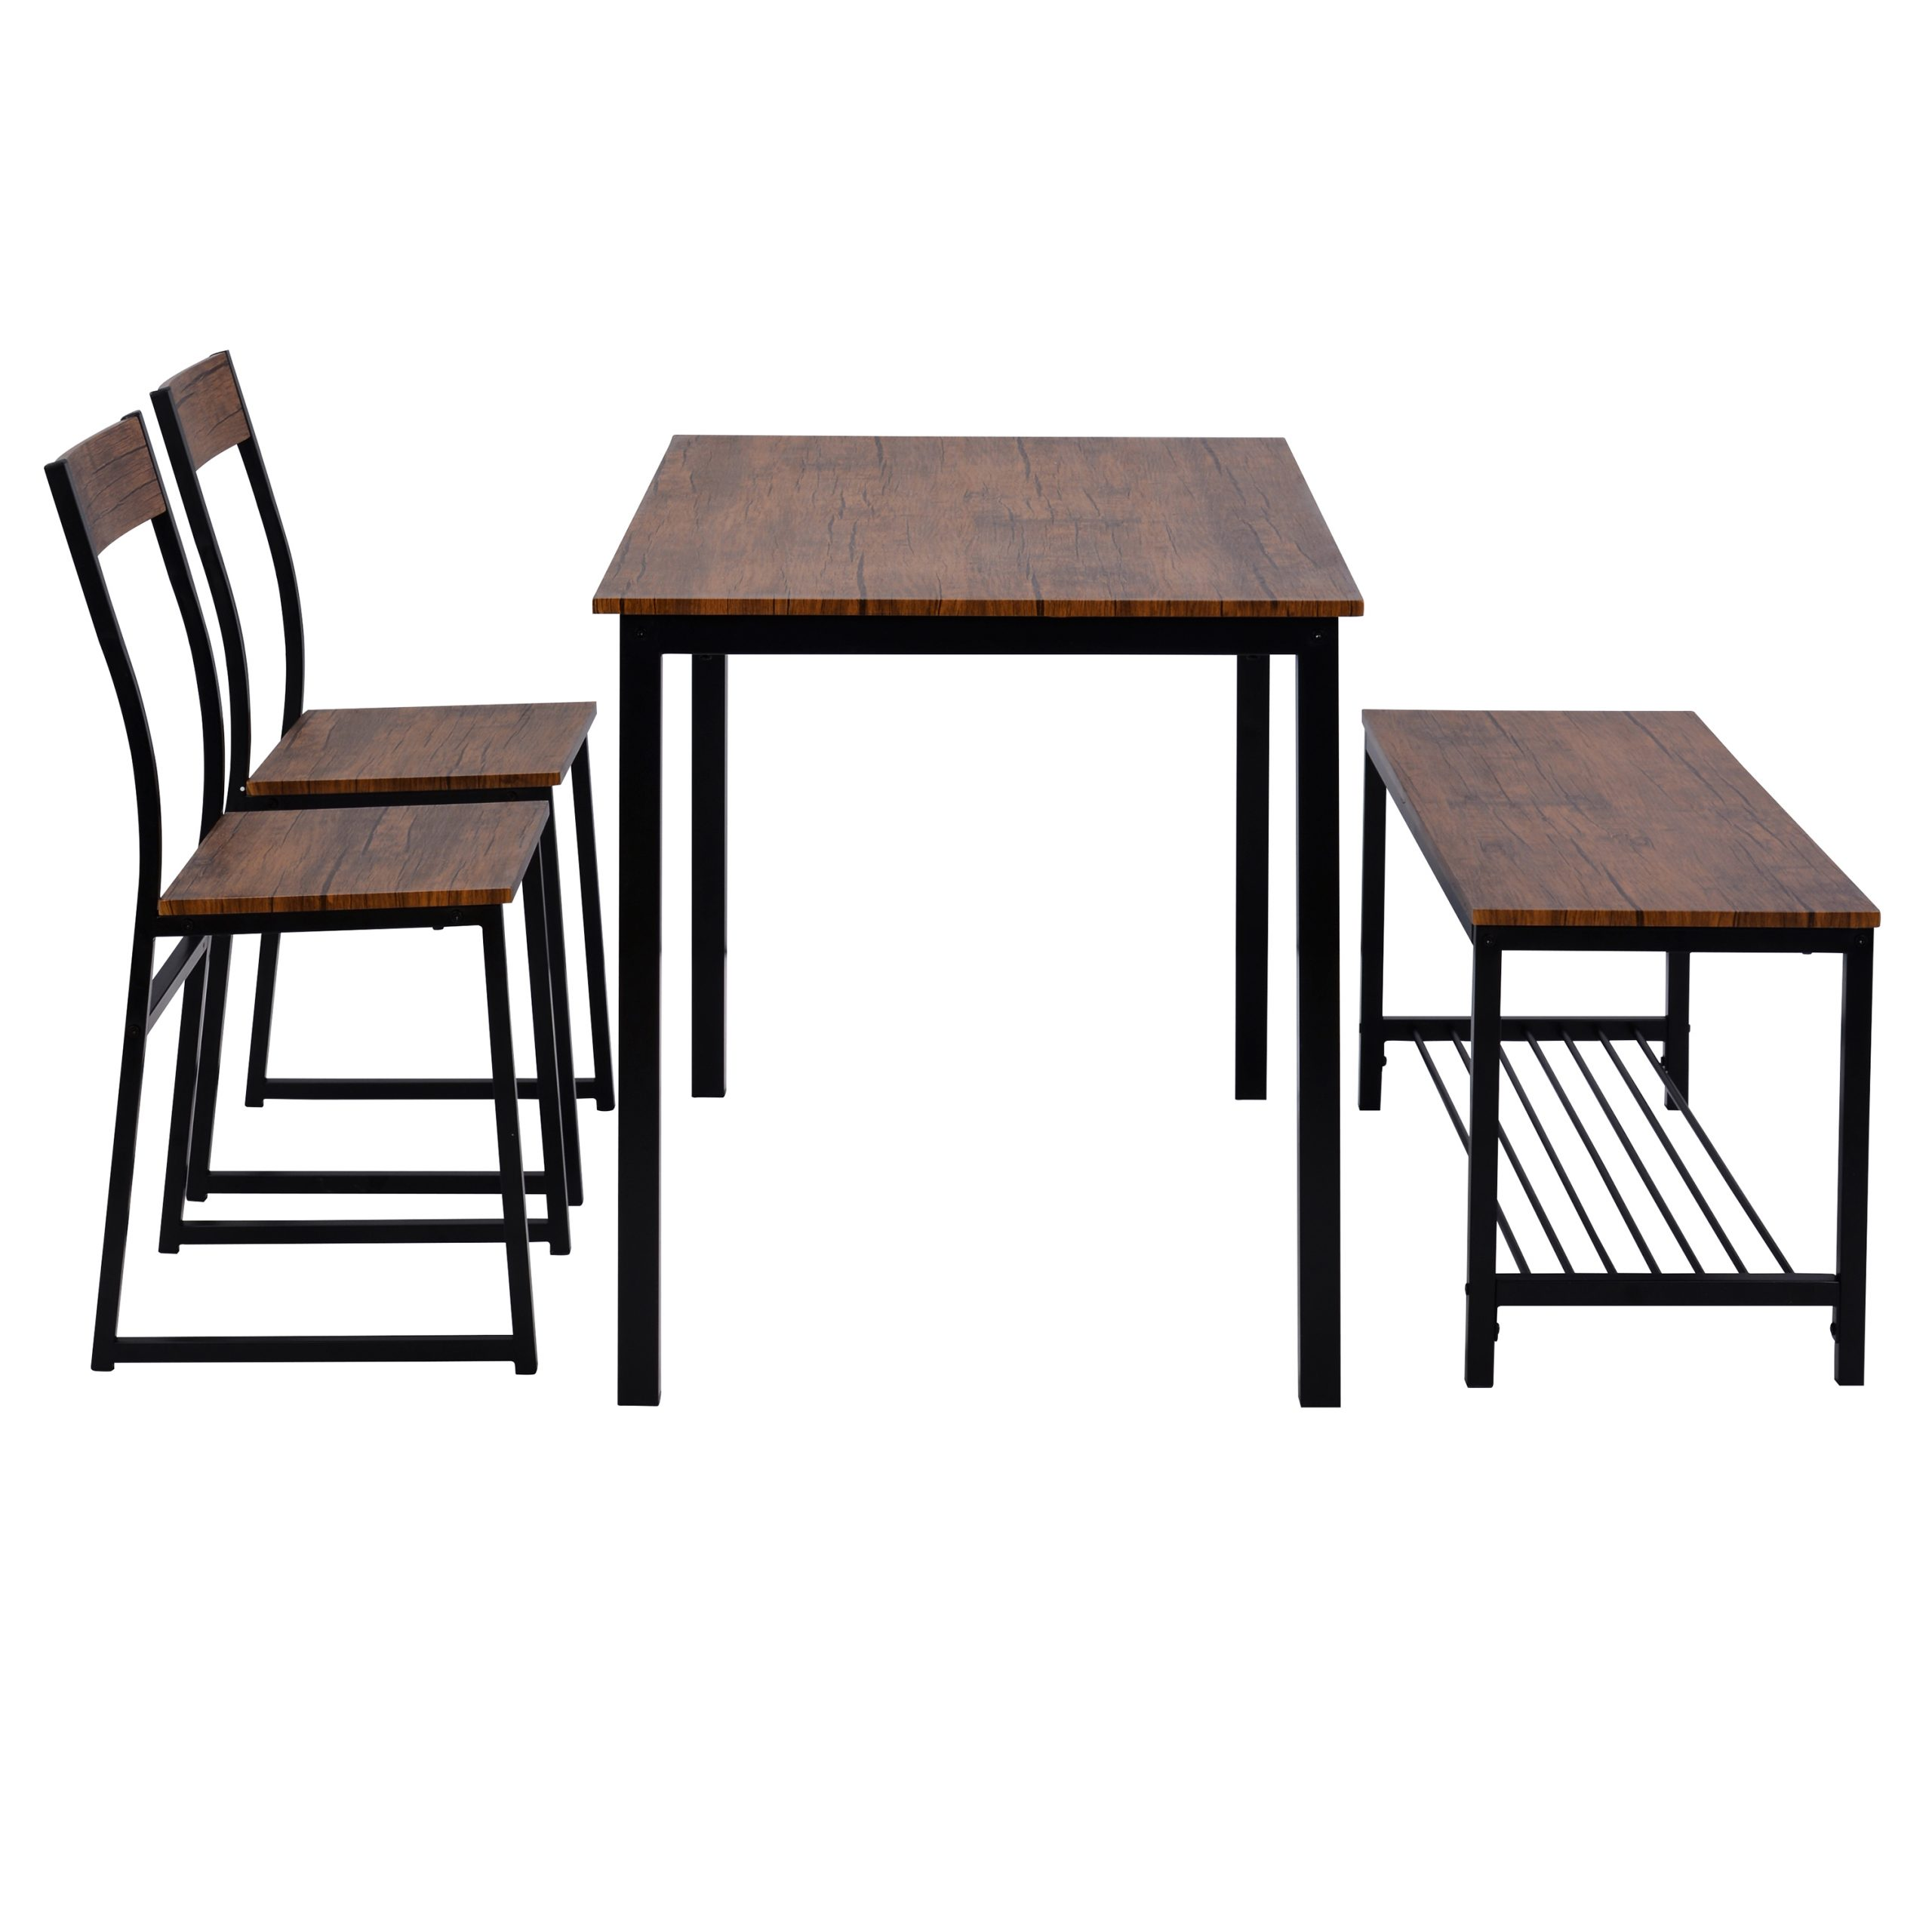 4 Kitchen Table Set, Computer Desk with 2 Chairs and Bench